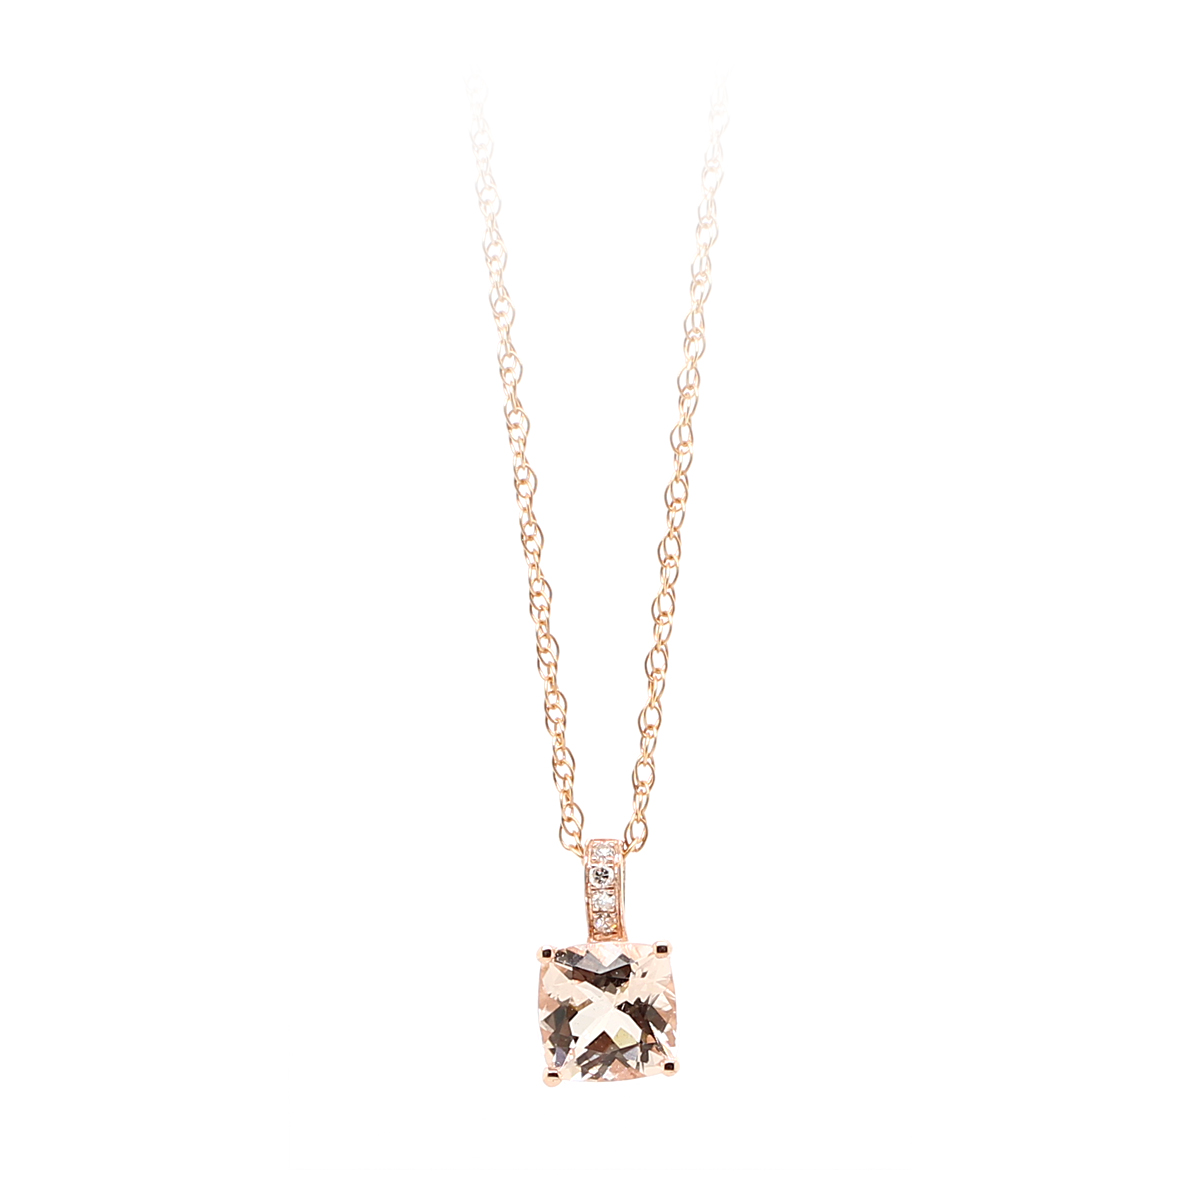 14 Karat Rose Gold Morganite and Diamond Pendant necklace